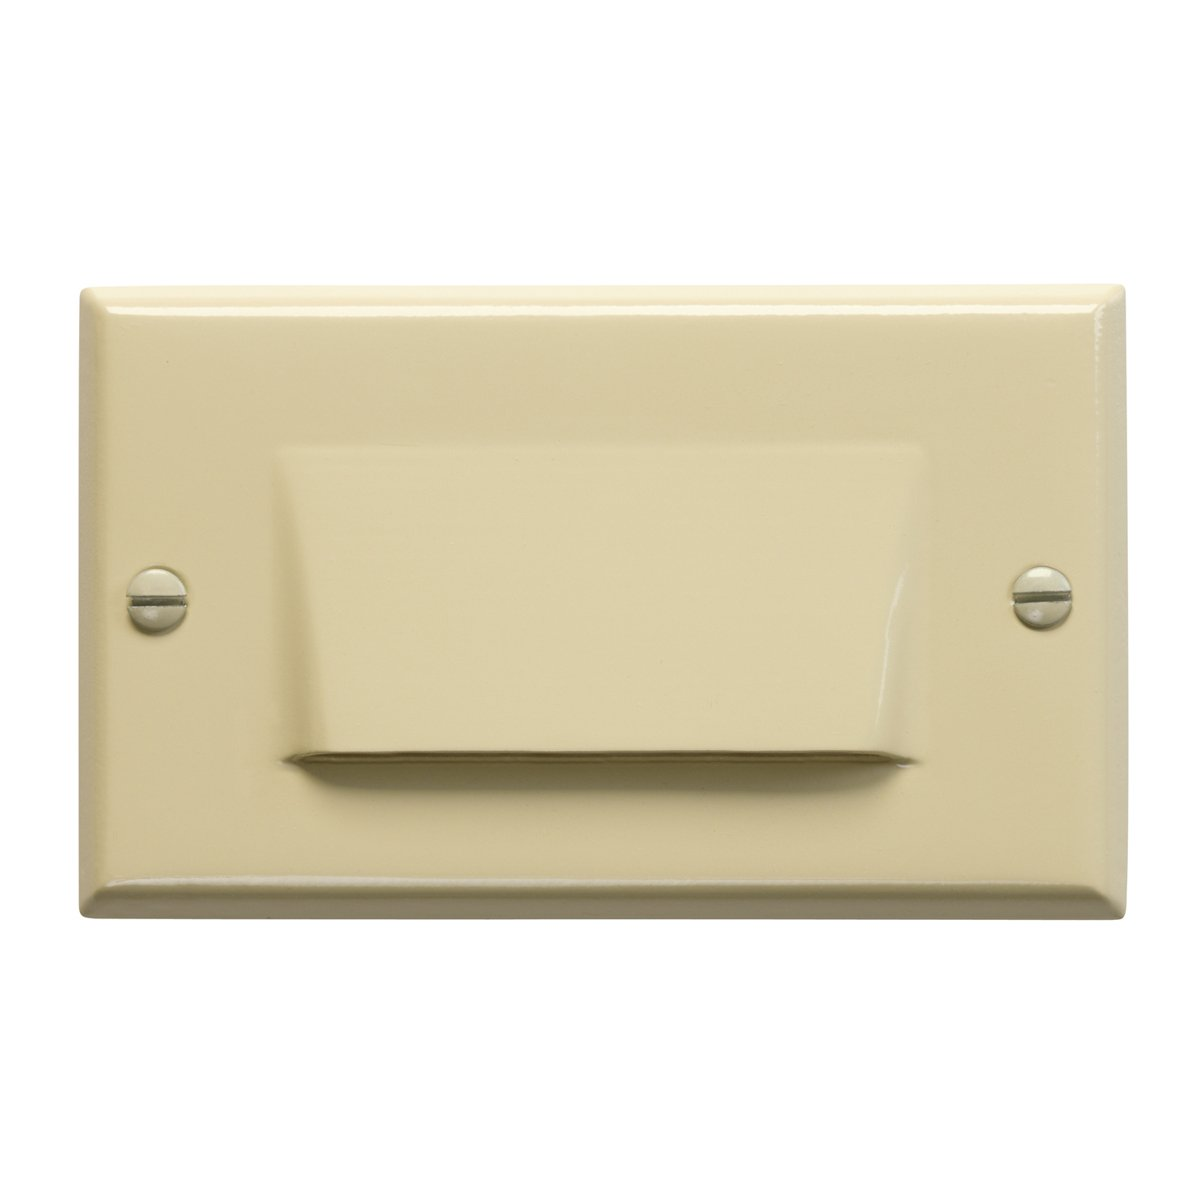 Kichler Lighting 12602IV Shielded Face LED 120V Step Light, Ivory Finish by Kichler Lighting